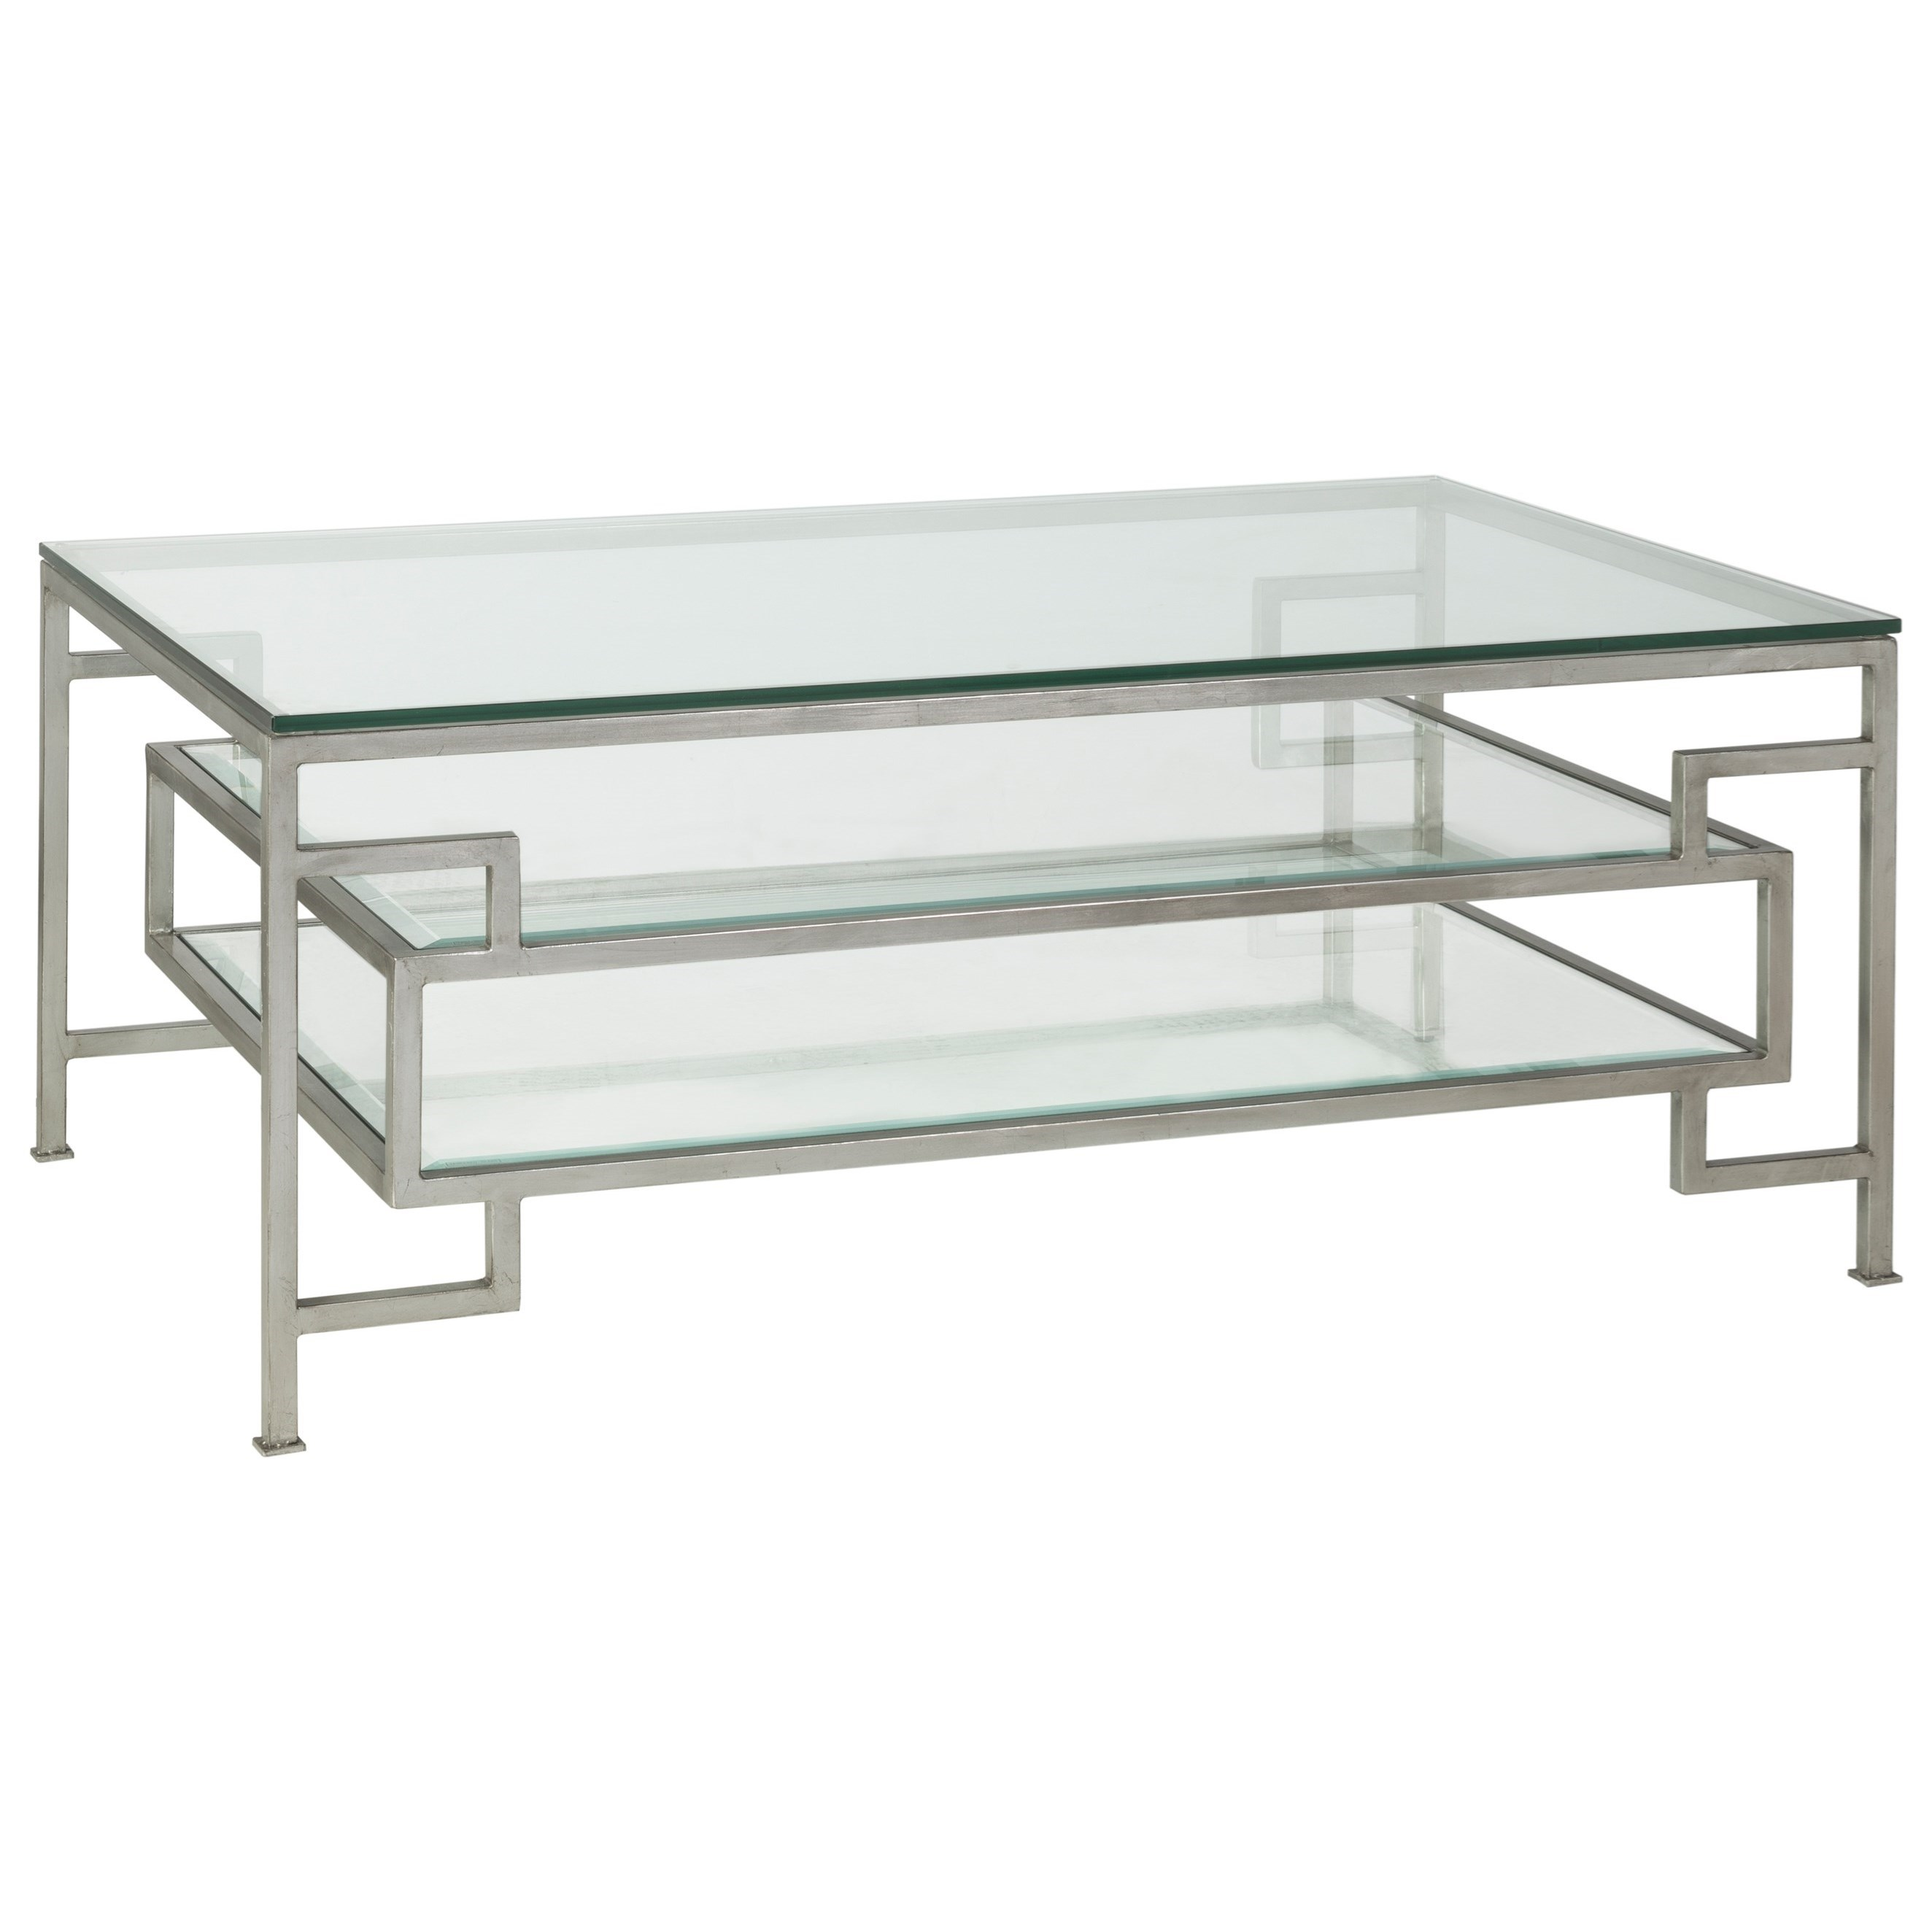 Metal Designs Suspension Rectangular Cocktail Table by Artistica at Sprintz Furniture